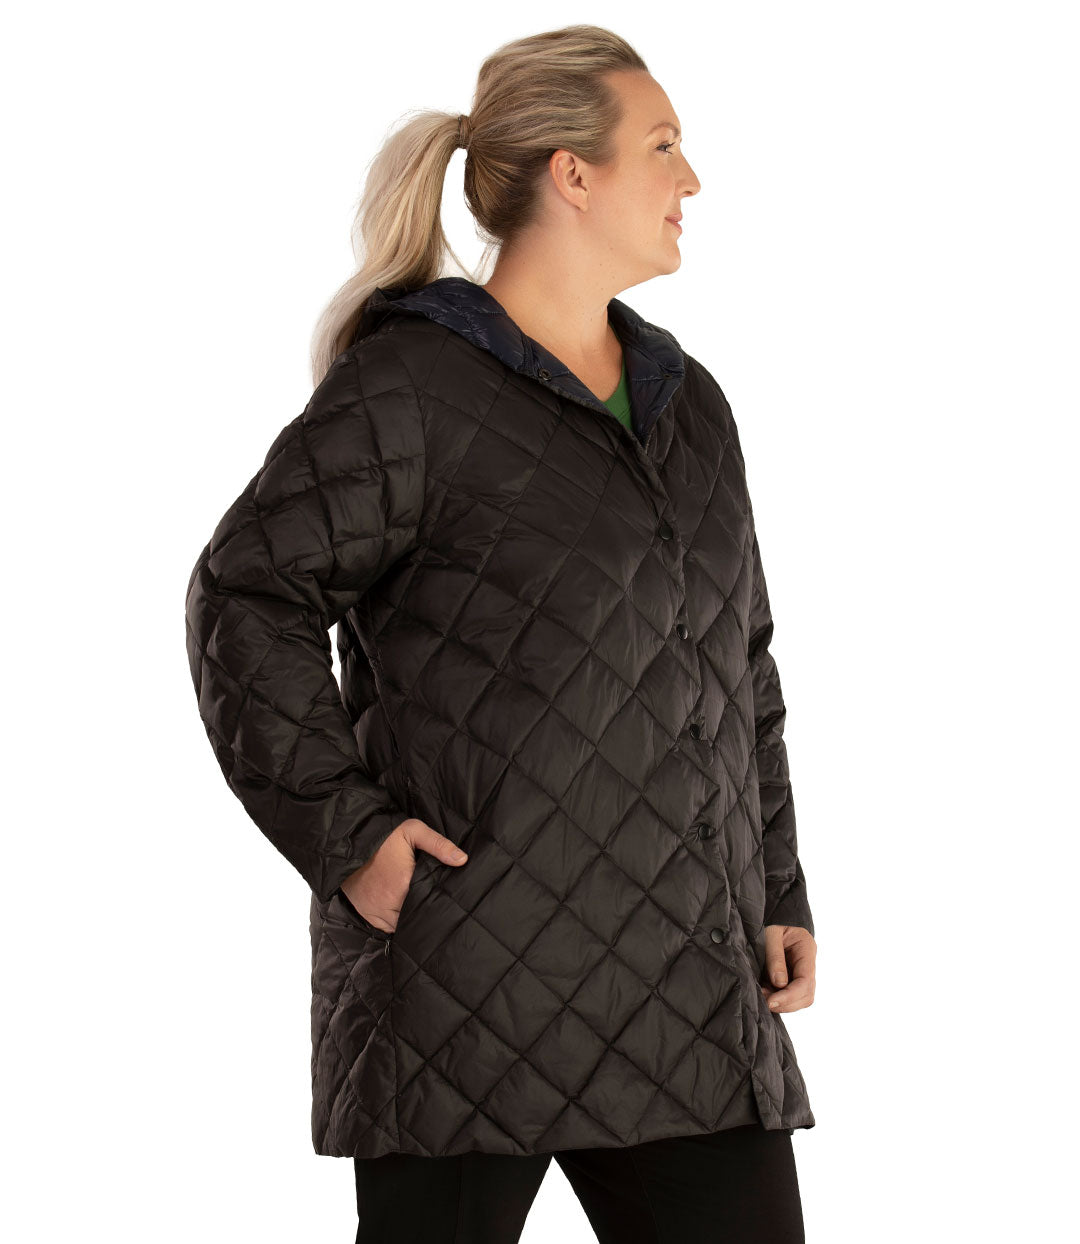 Quilted Light Weight Parka-Outerwear Jacket-Hangzhou Yelta Import and Export Co.,Ltd-XL-Black-JunoActive